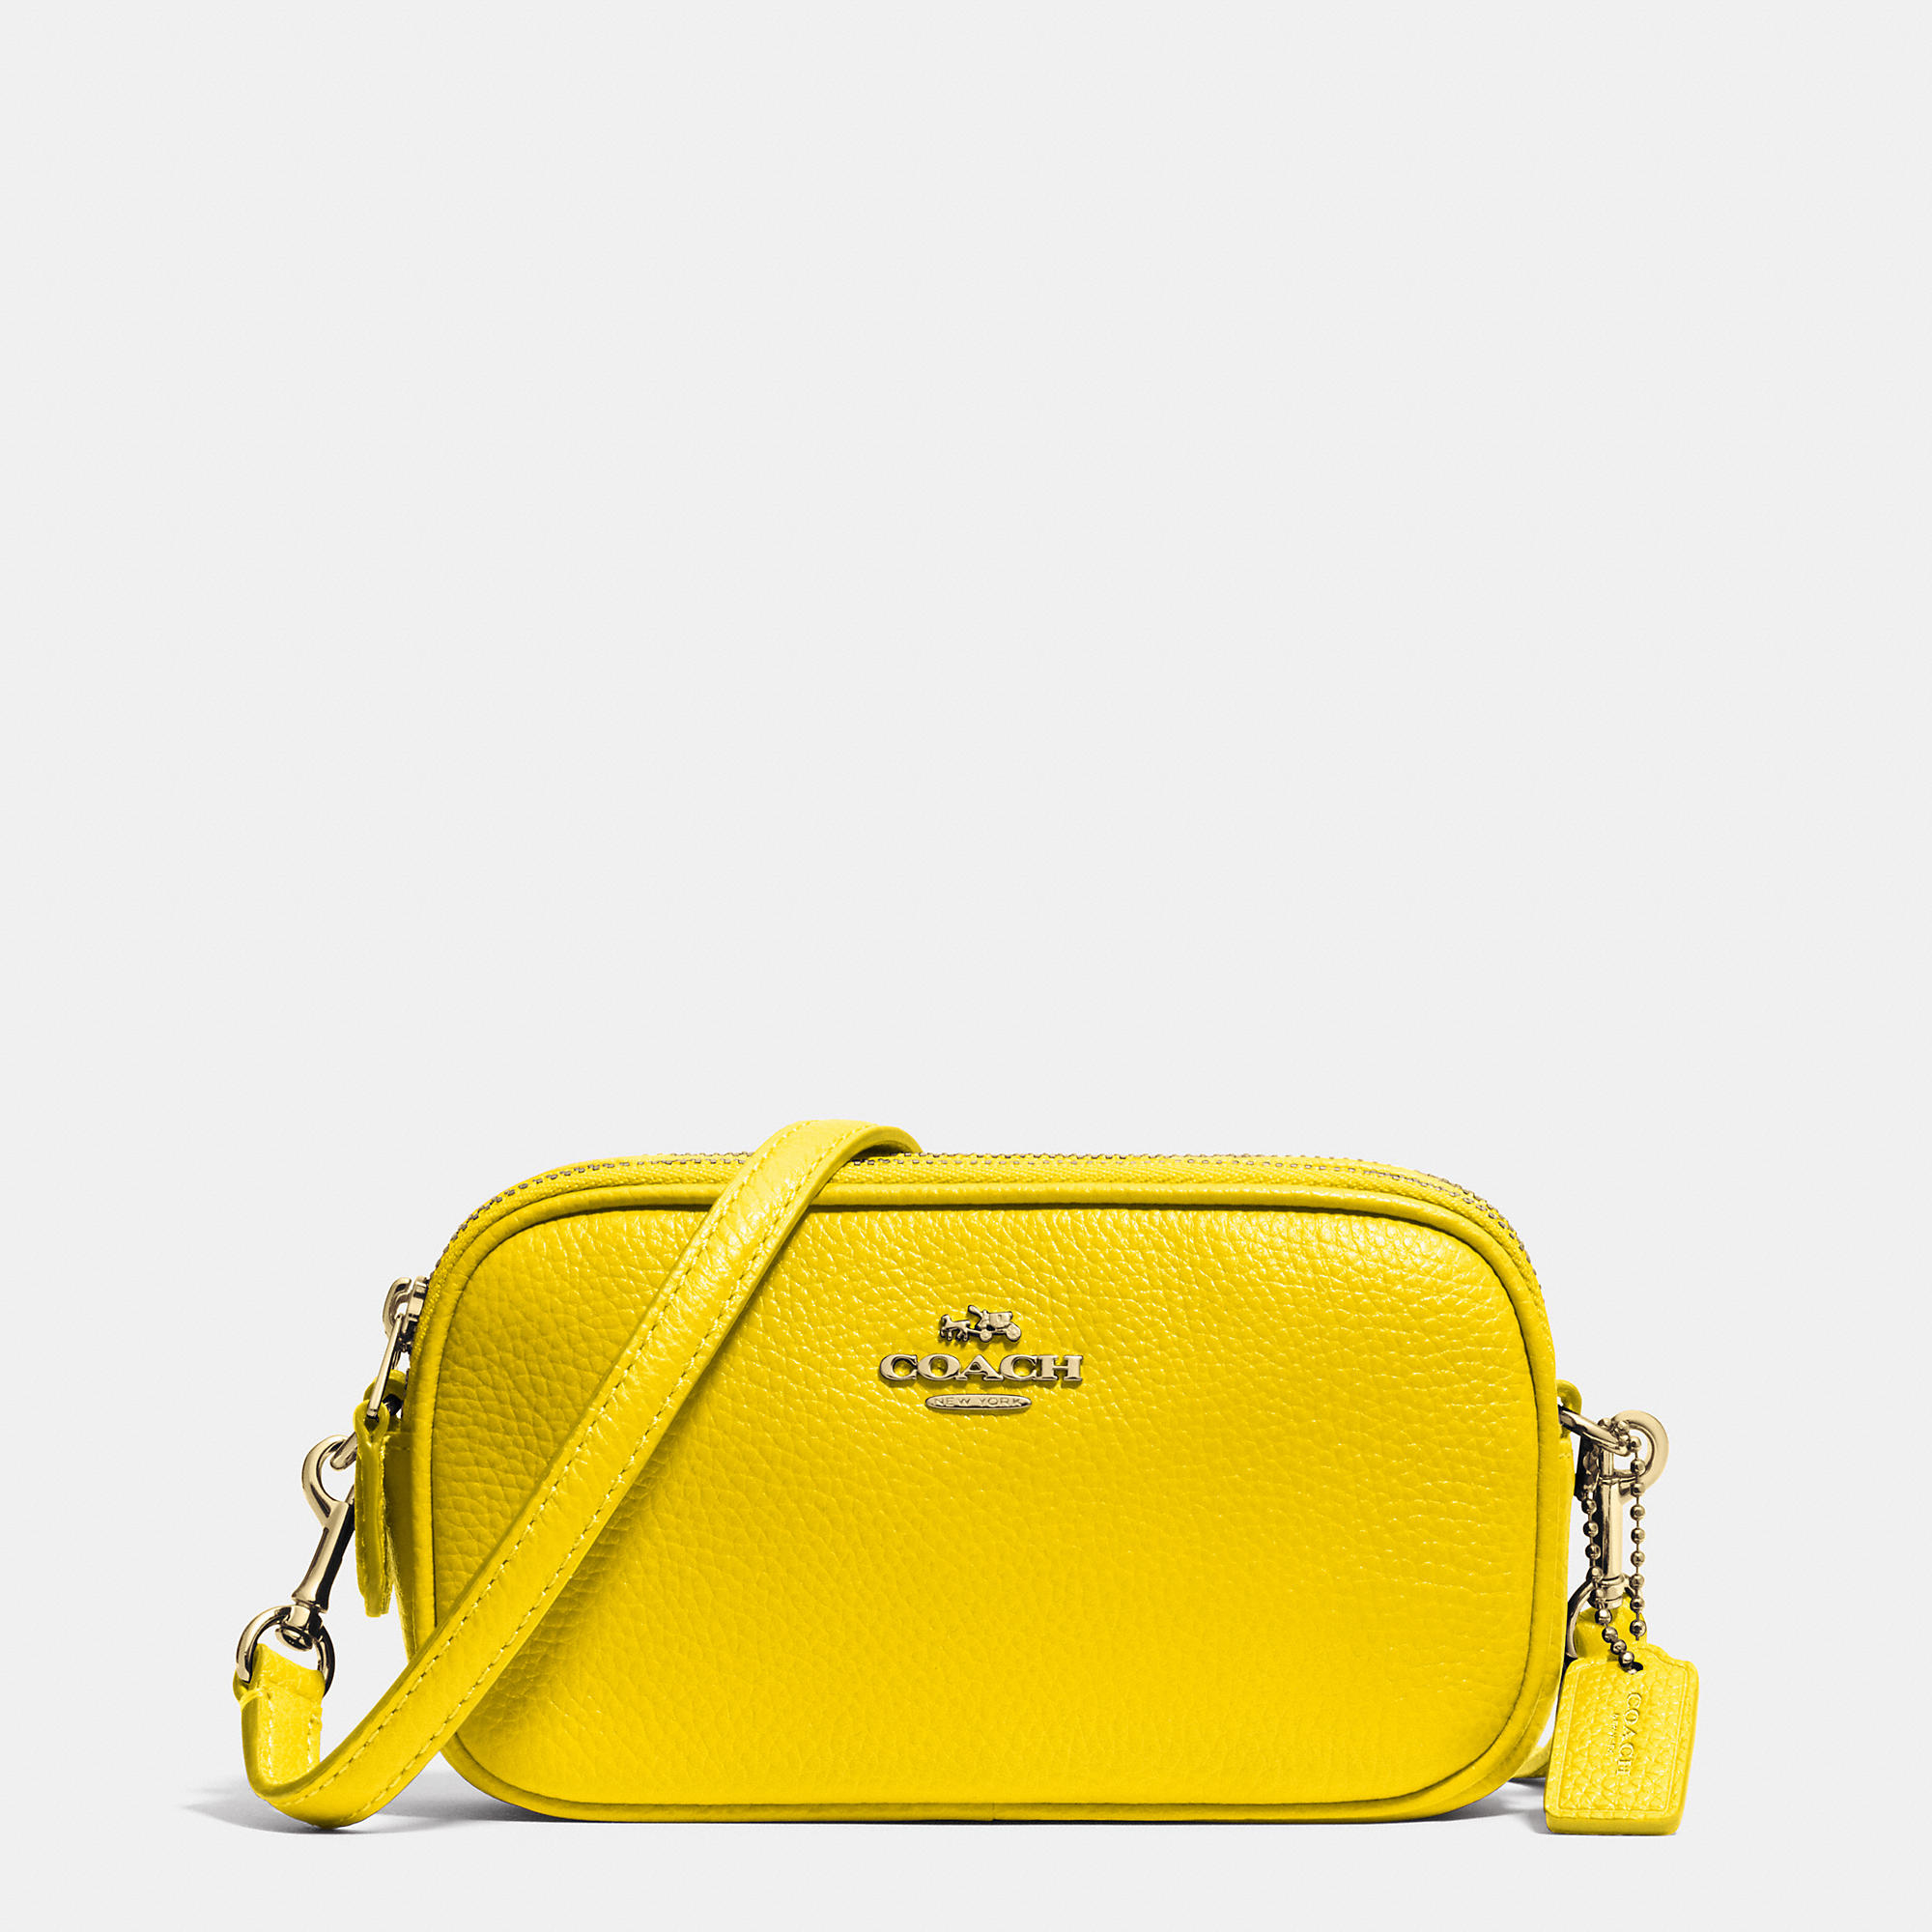 affbaf897576 Lyst - COACH Crossbody Pouch In Polished Pebble Leather in Yellow